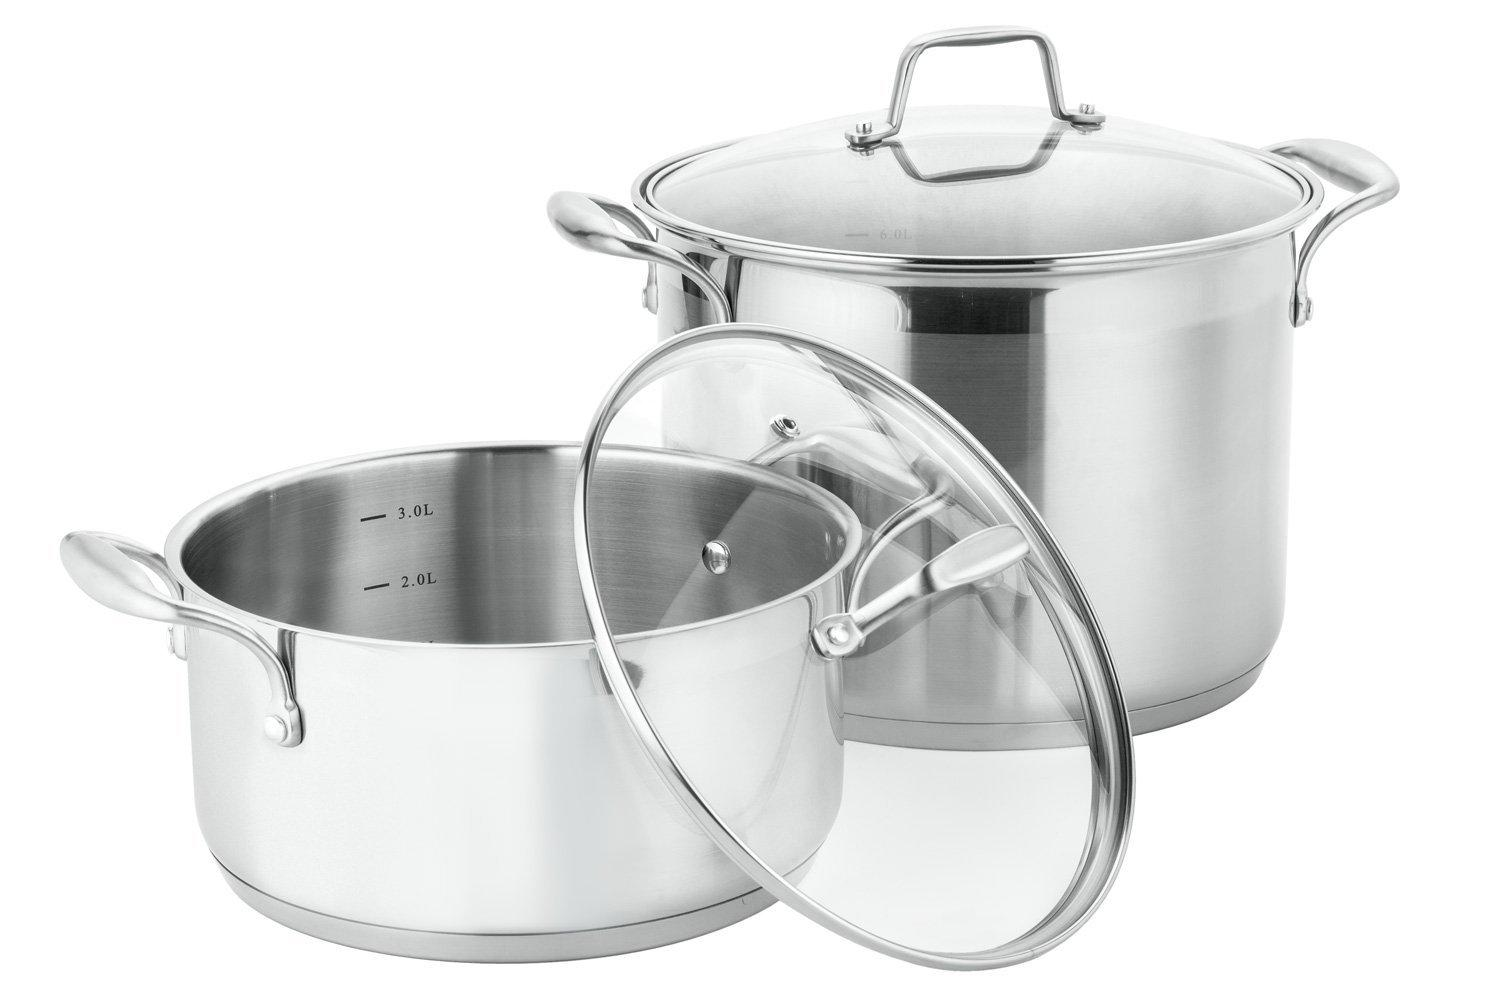 Image Result For Made In Pots And Pans Amazon